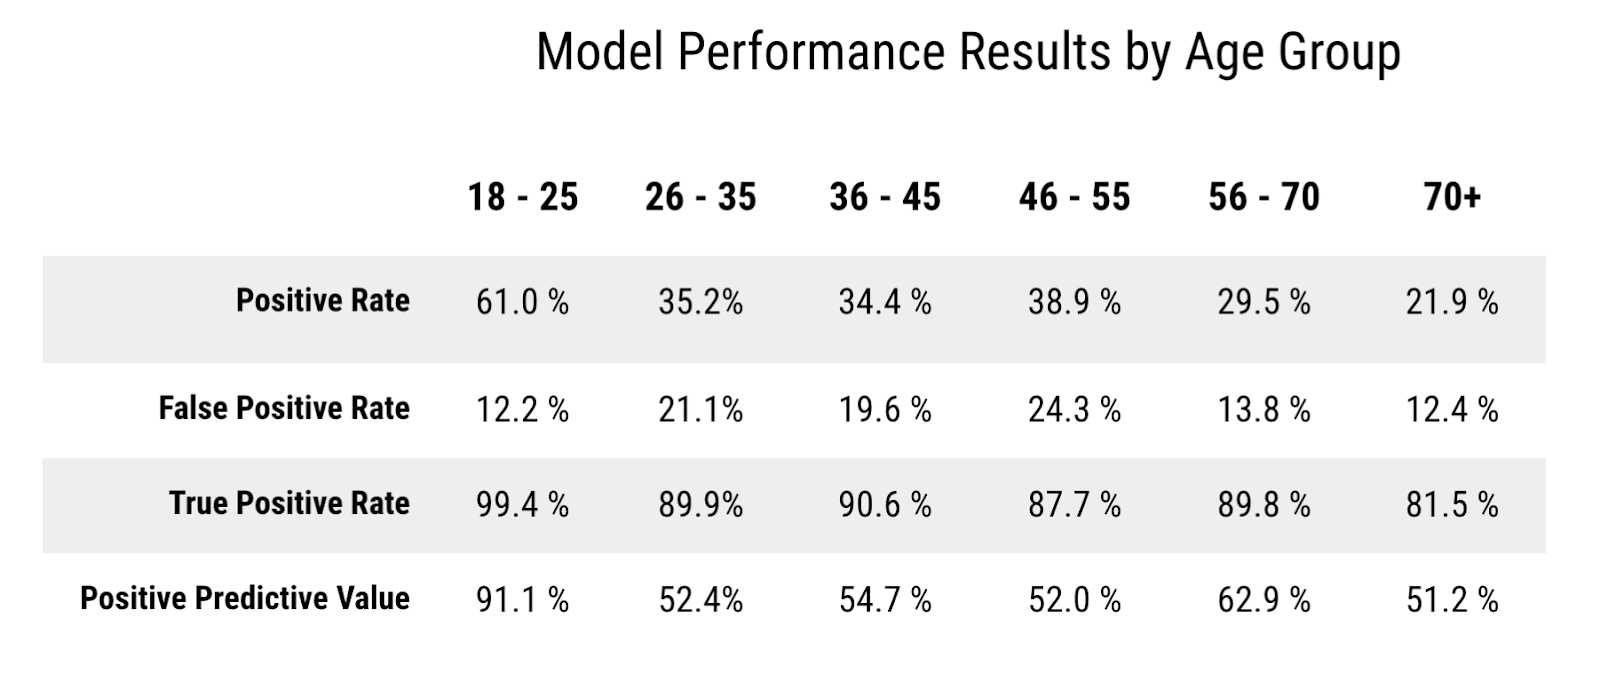 model performance results by age group